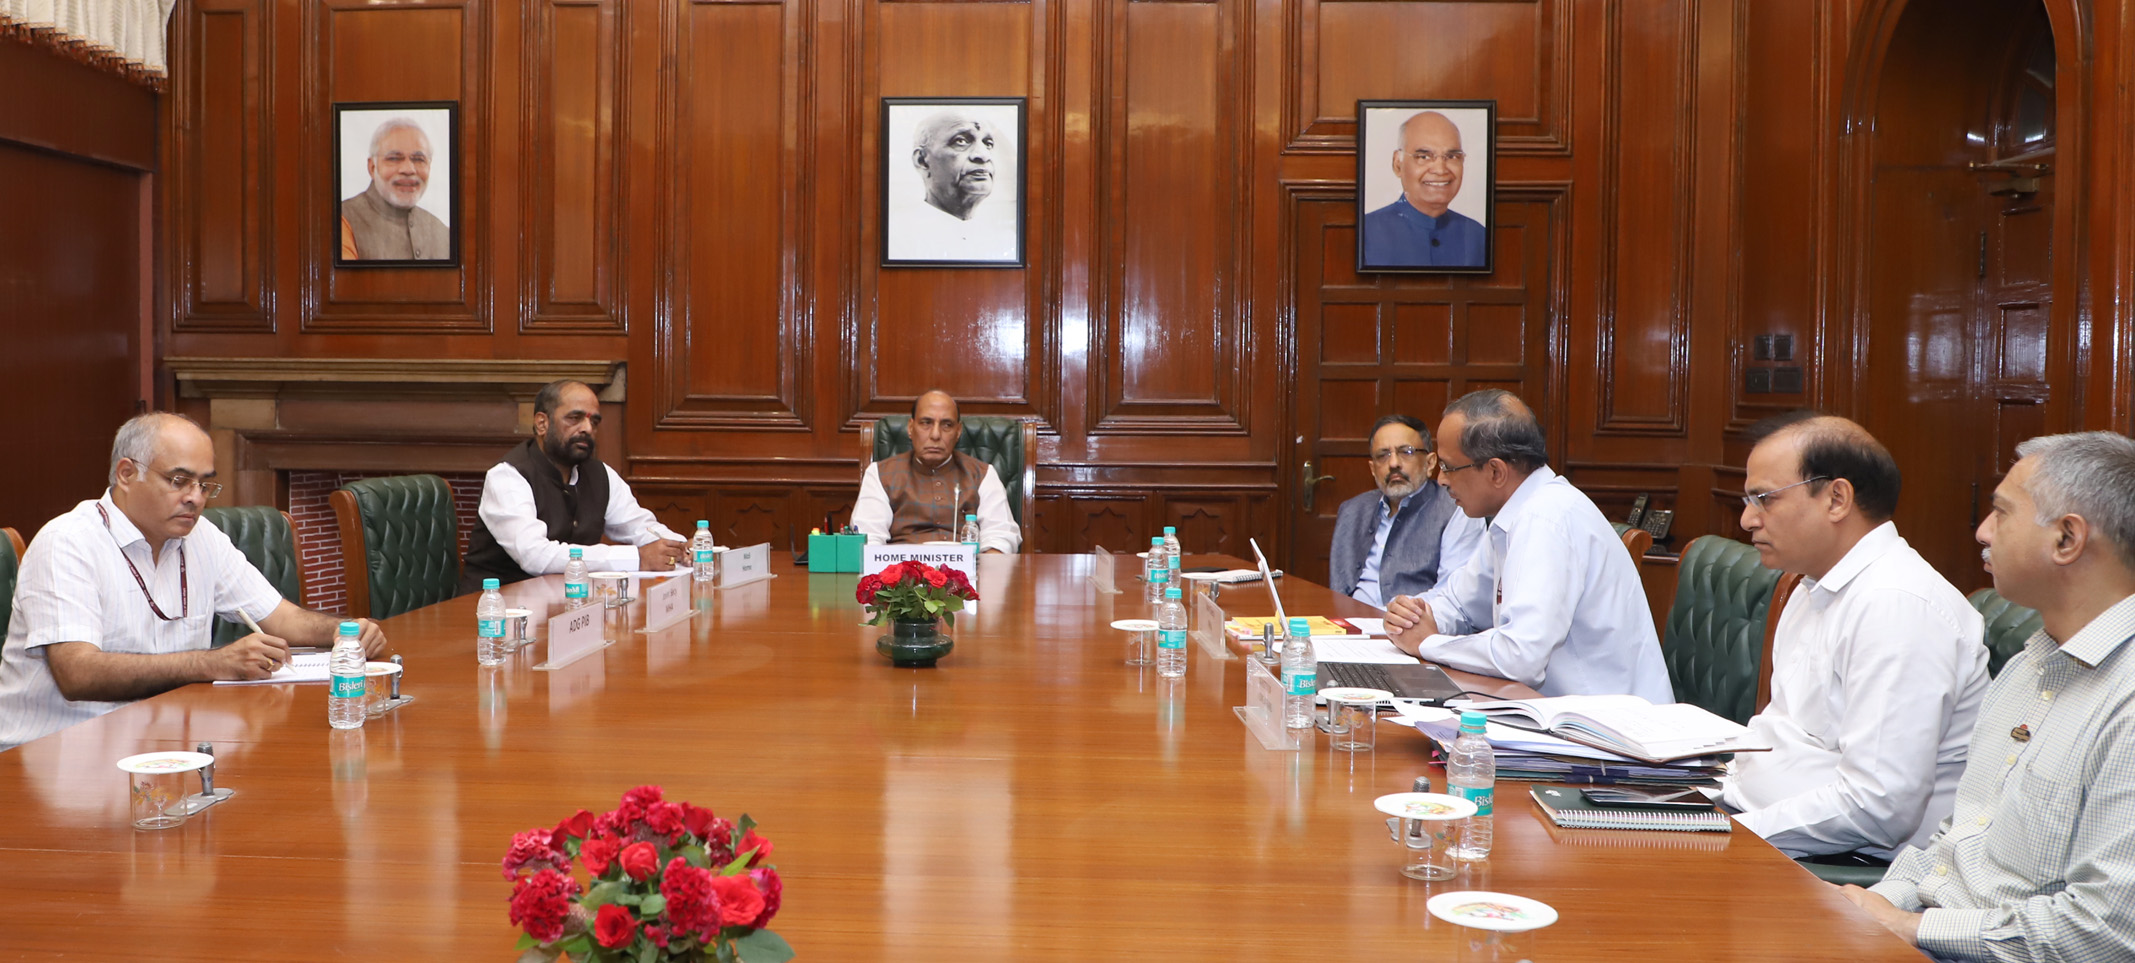 The Union Home Minister, Shri Rajnath Singh chairing a high level meeting to review the Cyber and Information Security (C&IS) Division of MHA, in New Delhi on June 18, 2018. 	The Minister of State for Home Affairs, Shri Hansraj Gangaram Ahir, the Union Home Secretary, Shri Rajiv Gauba and Senior Officers of MHA are also seen.